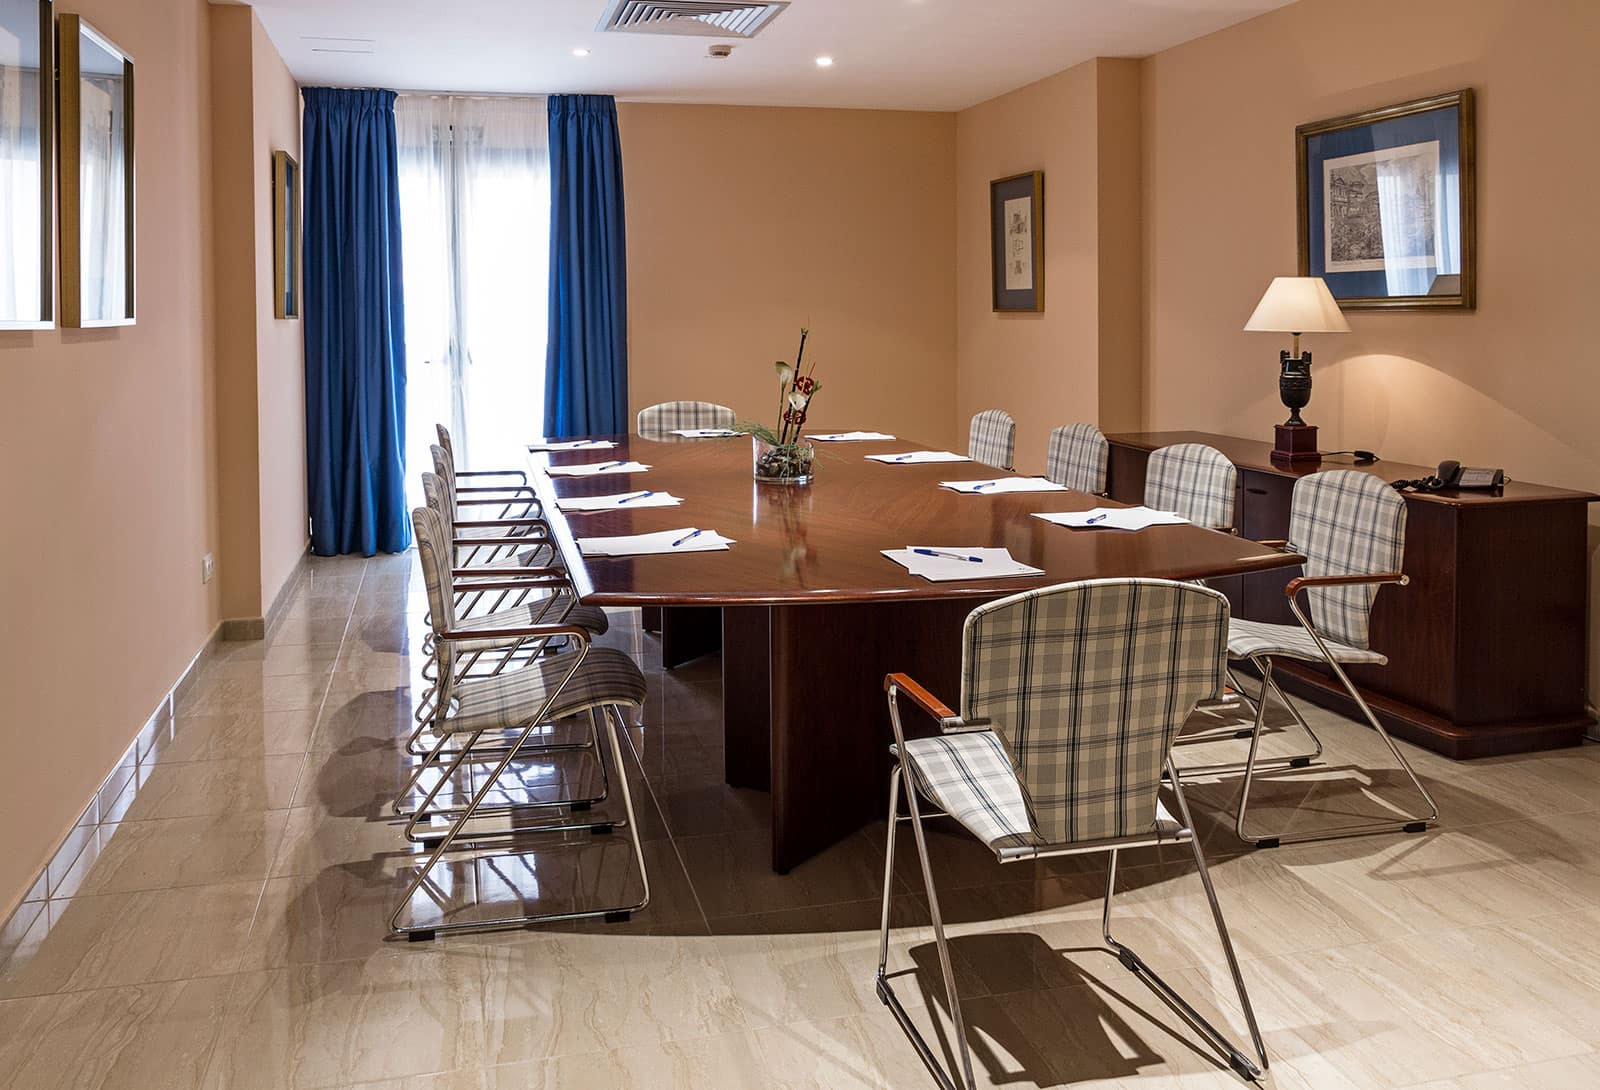 Be Live Orotava - Hotel for business